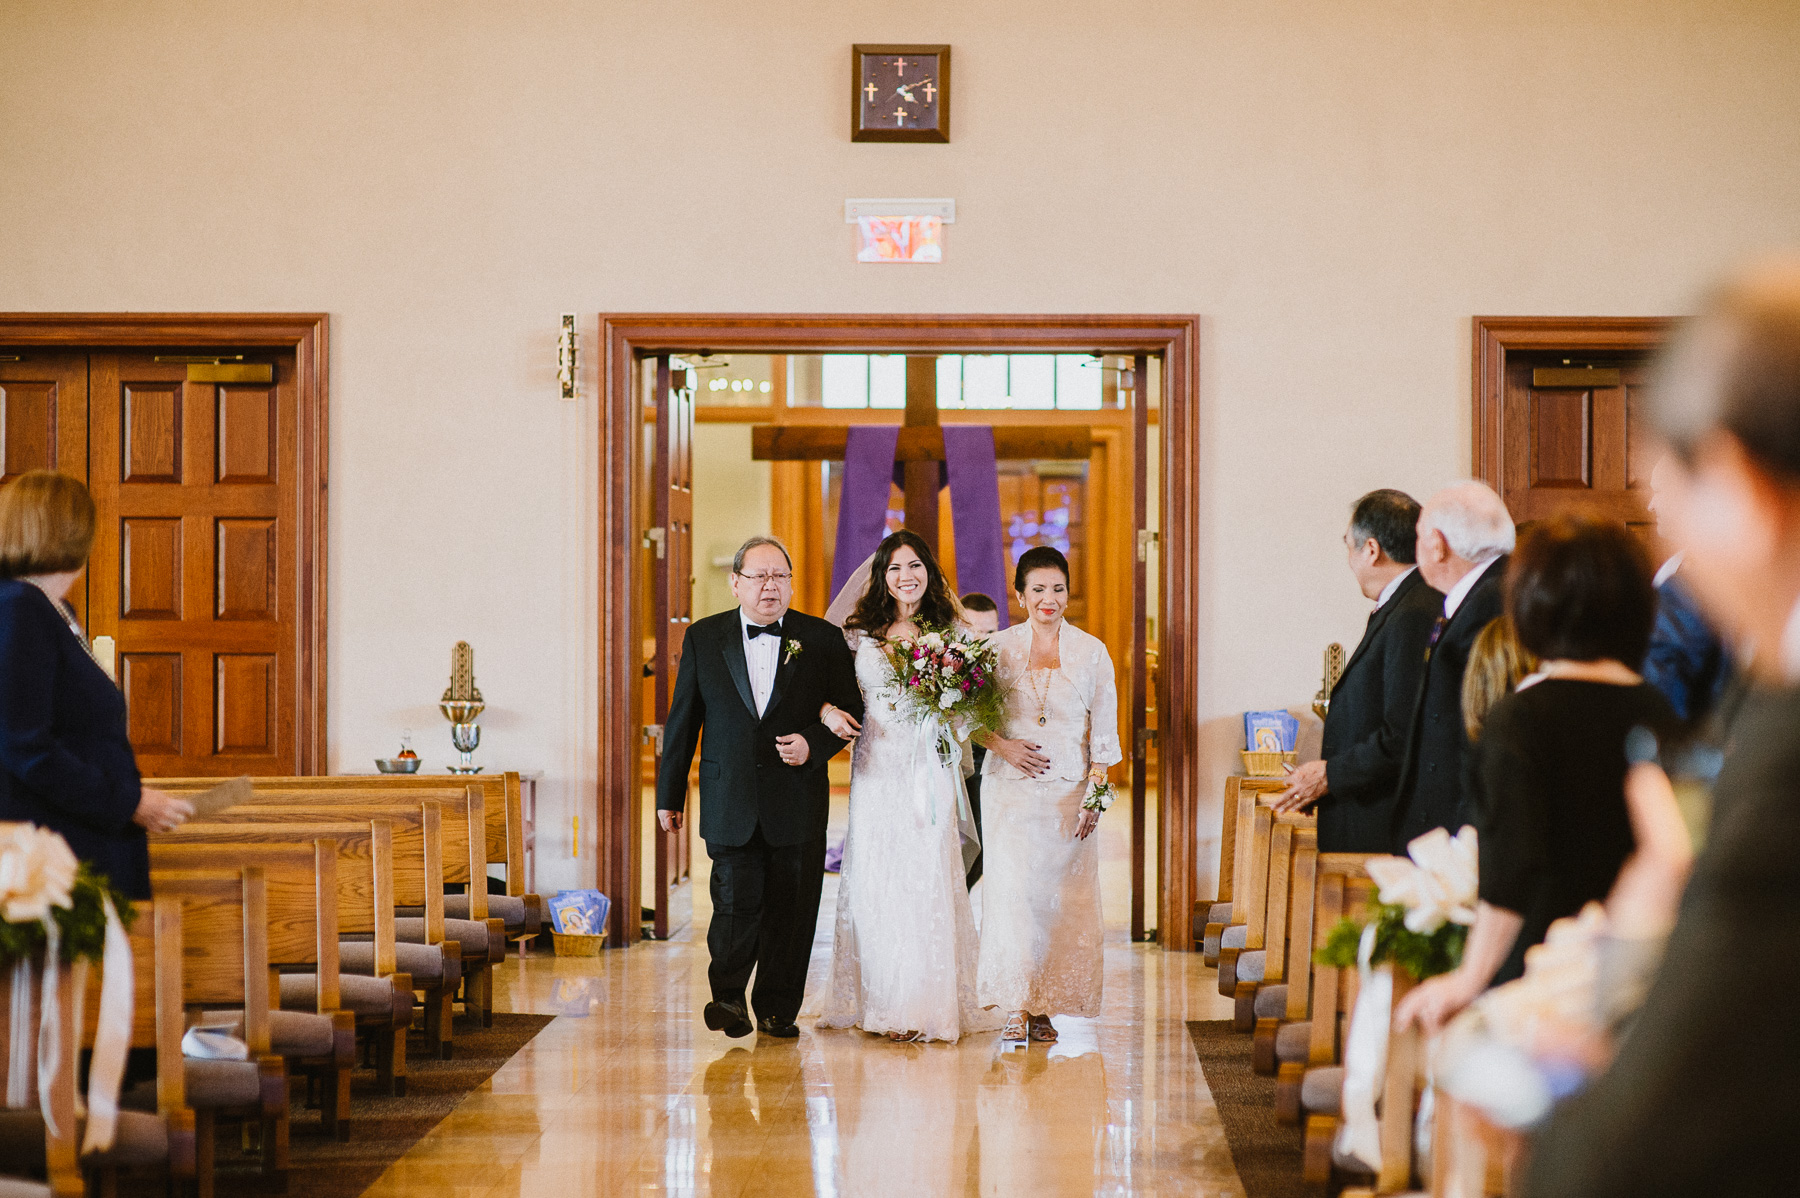 The_Carriage_House_at_Rockwood_Park_wedding_photo059.jpg